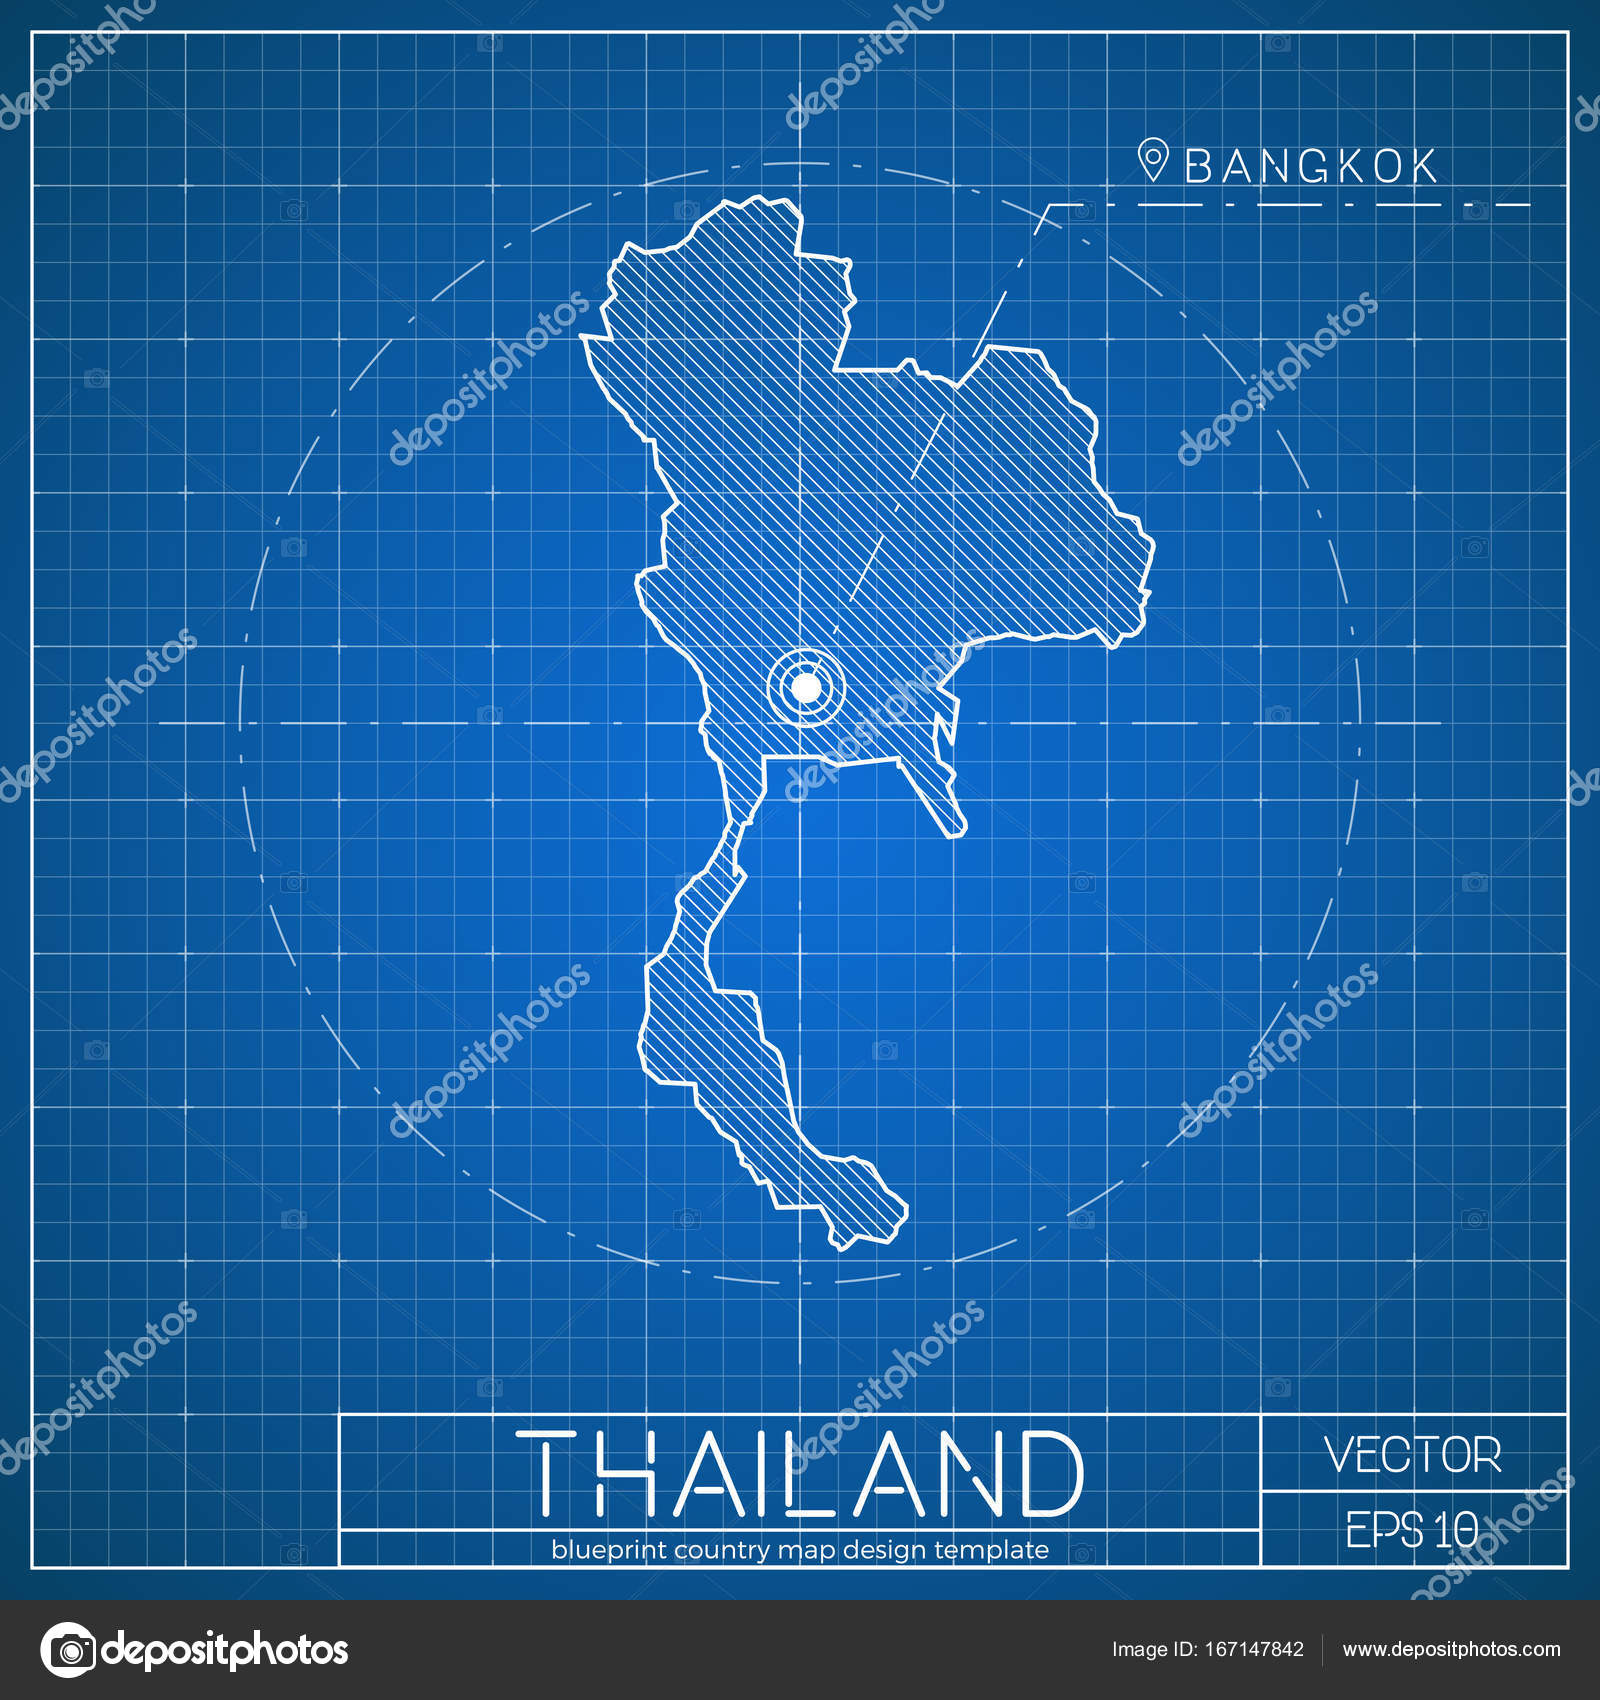 Thailand blueprint map template with capital city bangkok marked on thailand blueprint map template with capital city bangkok marked on blueprint thai map vector stock malvernweather Choice Image